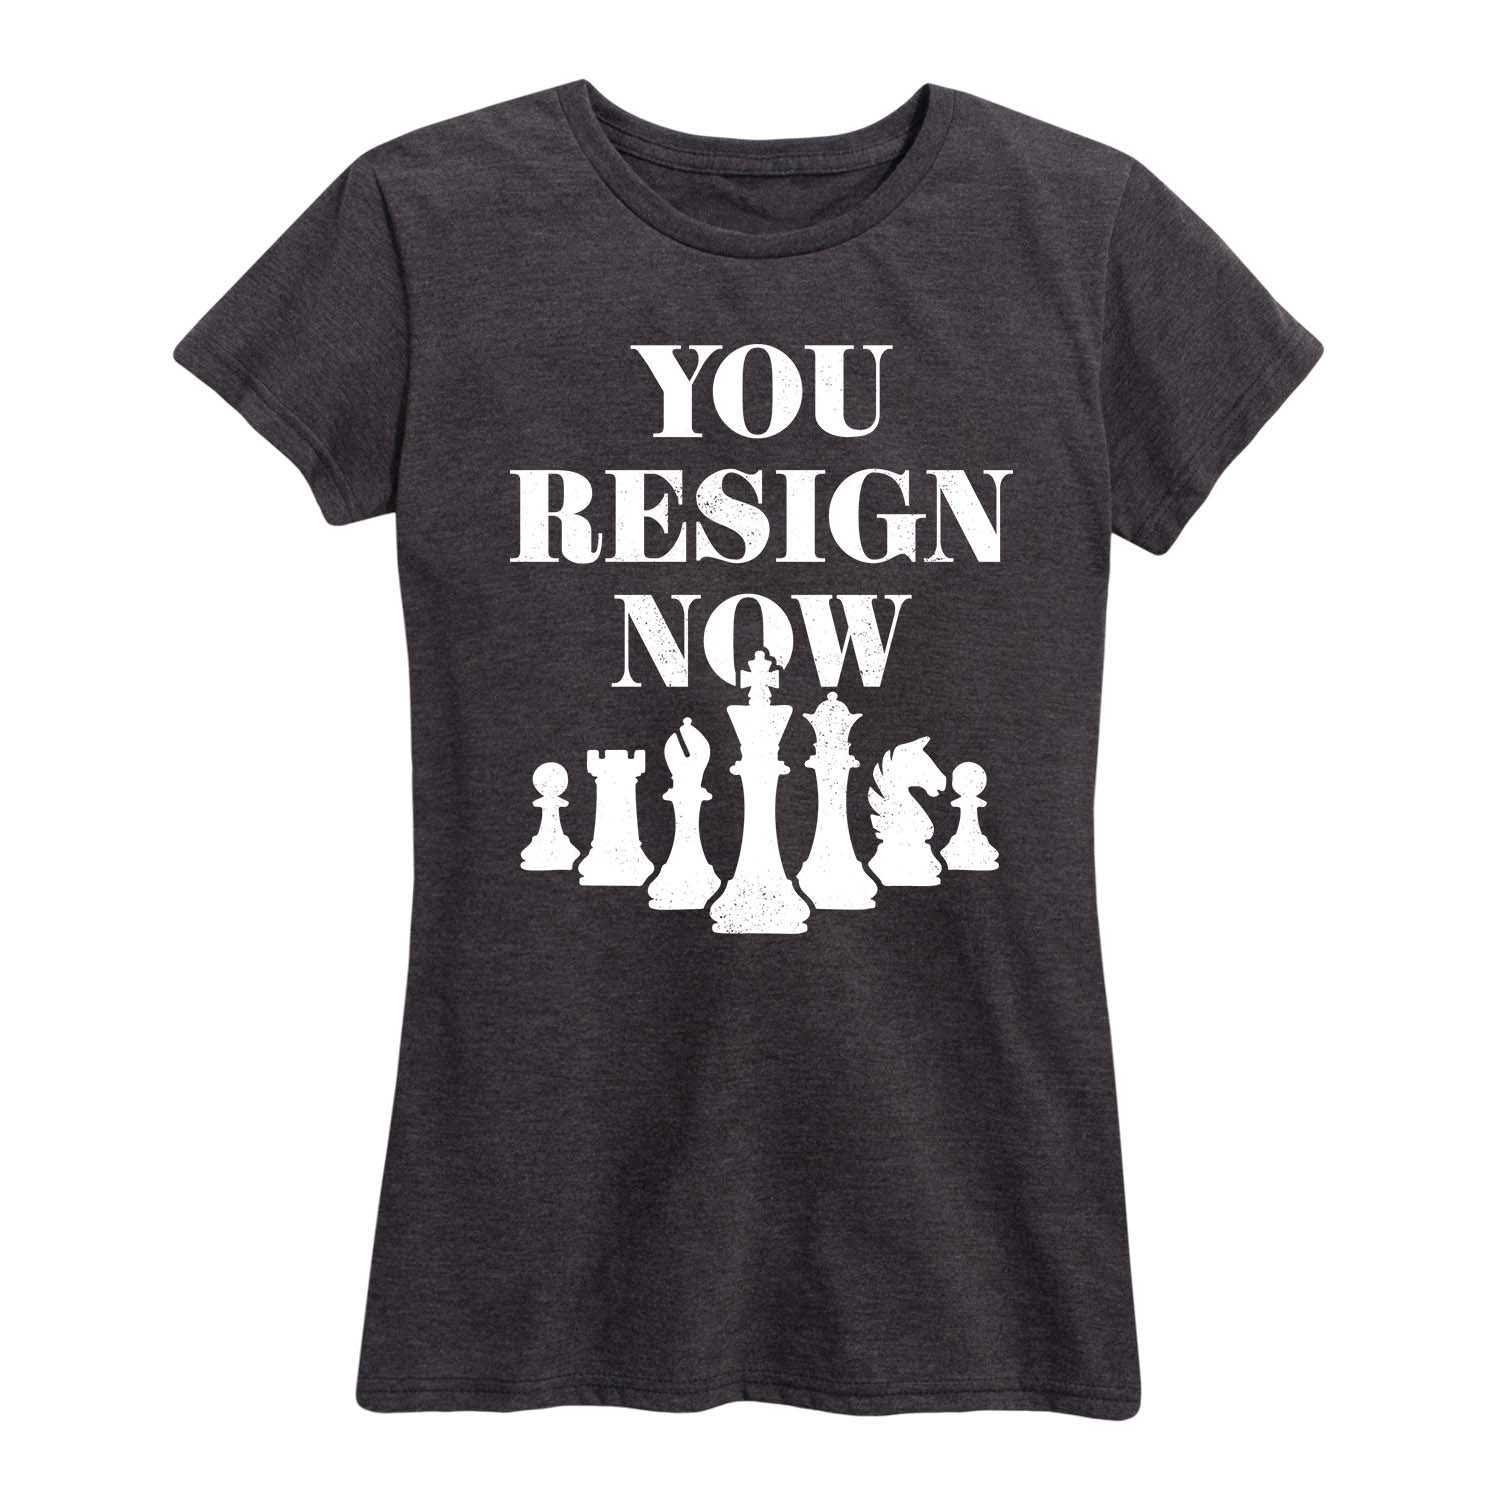 You Resign Now - Women's Short Sleeve T-Shirt